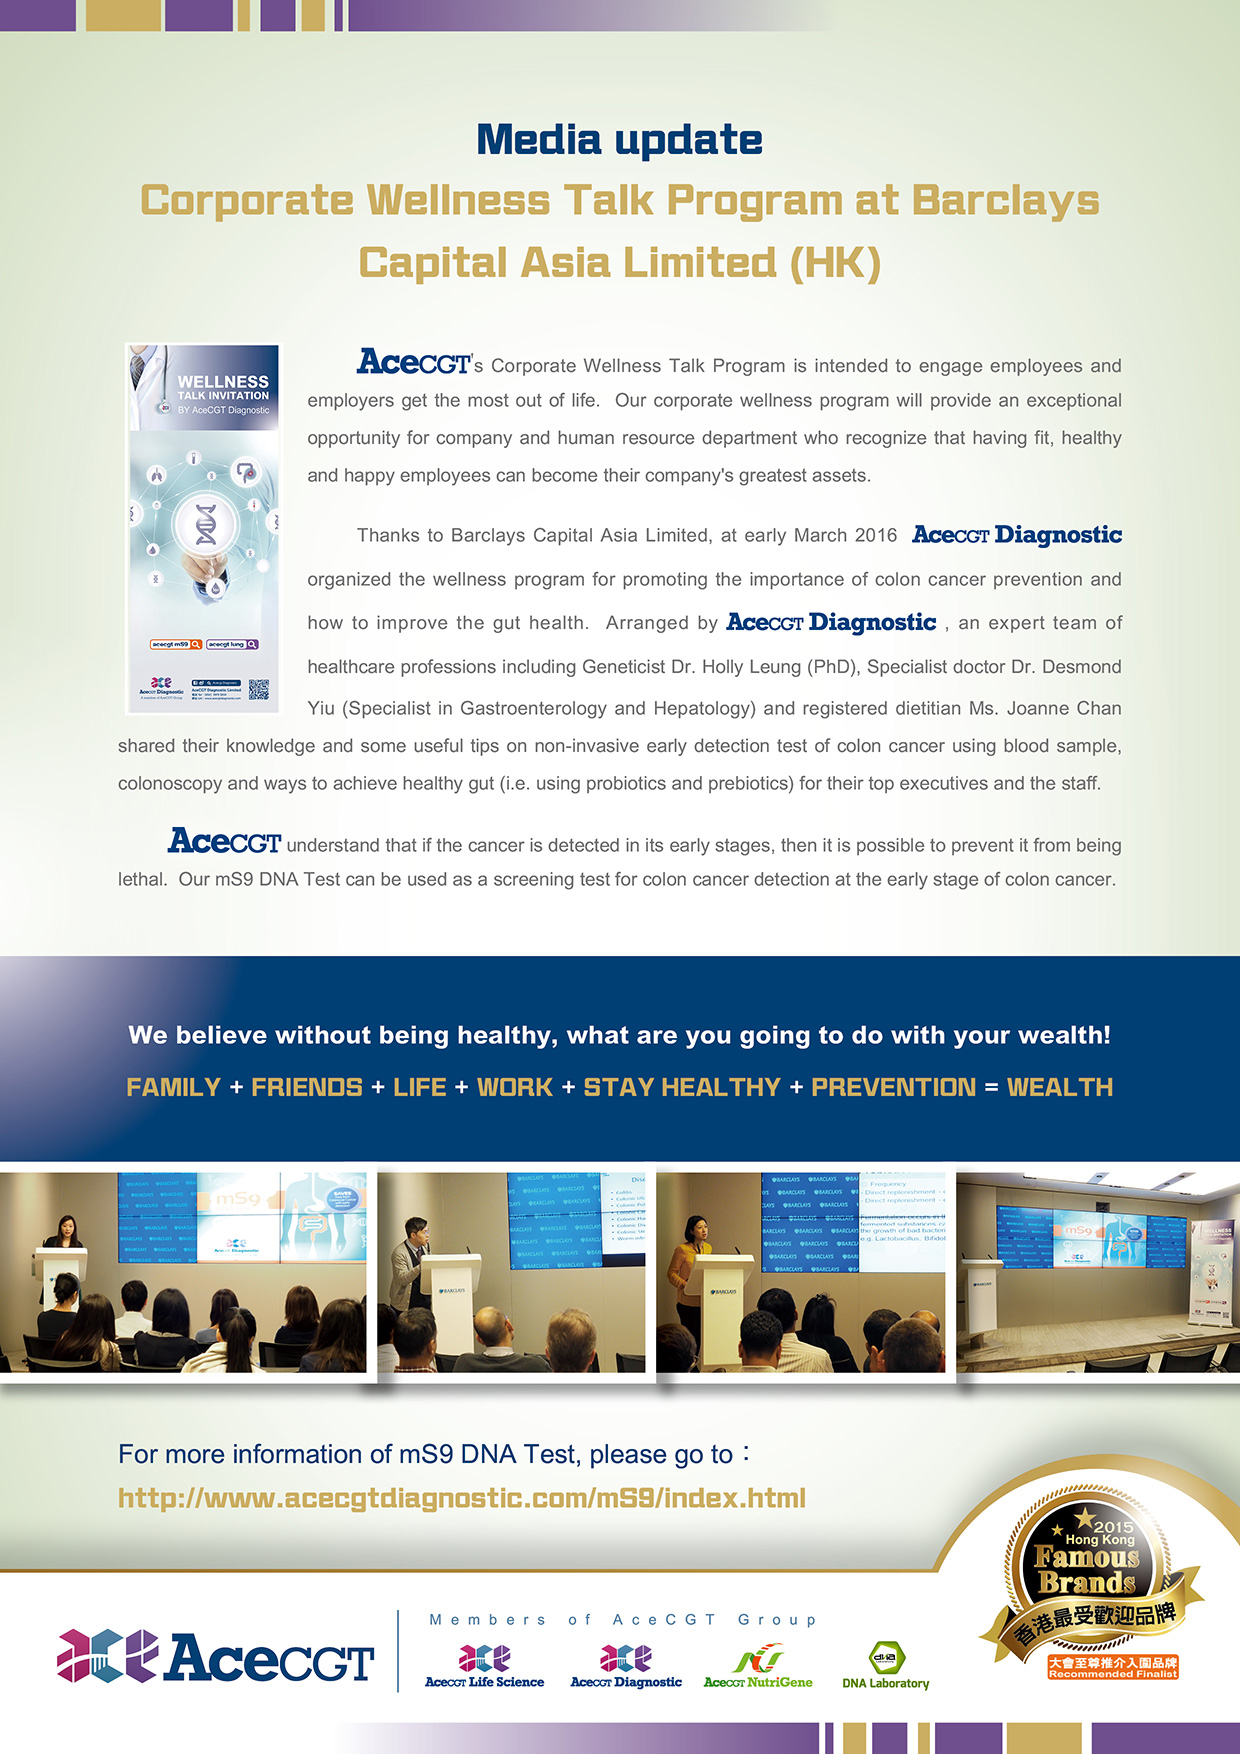 Corporate Wellness Talk Program at Barclays Capital Asia Limited (HK)